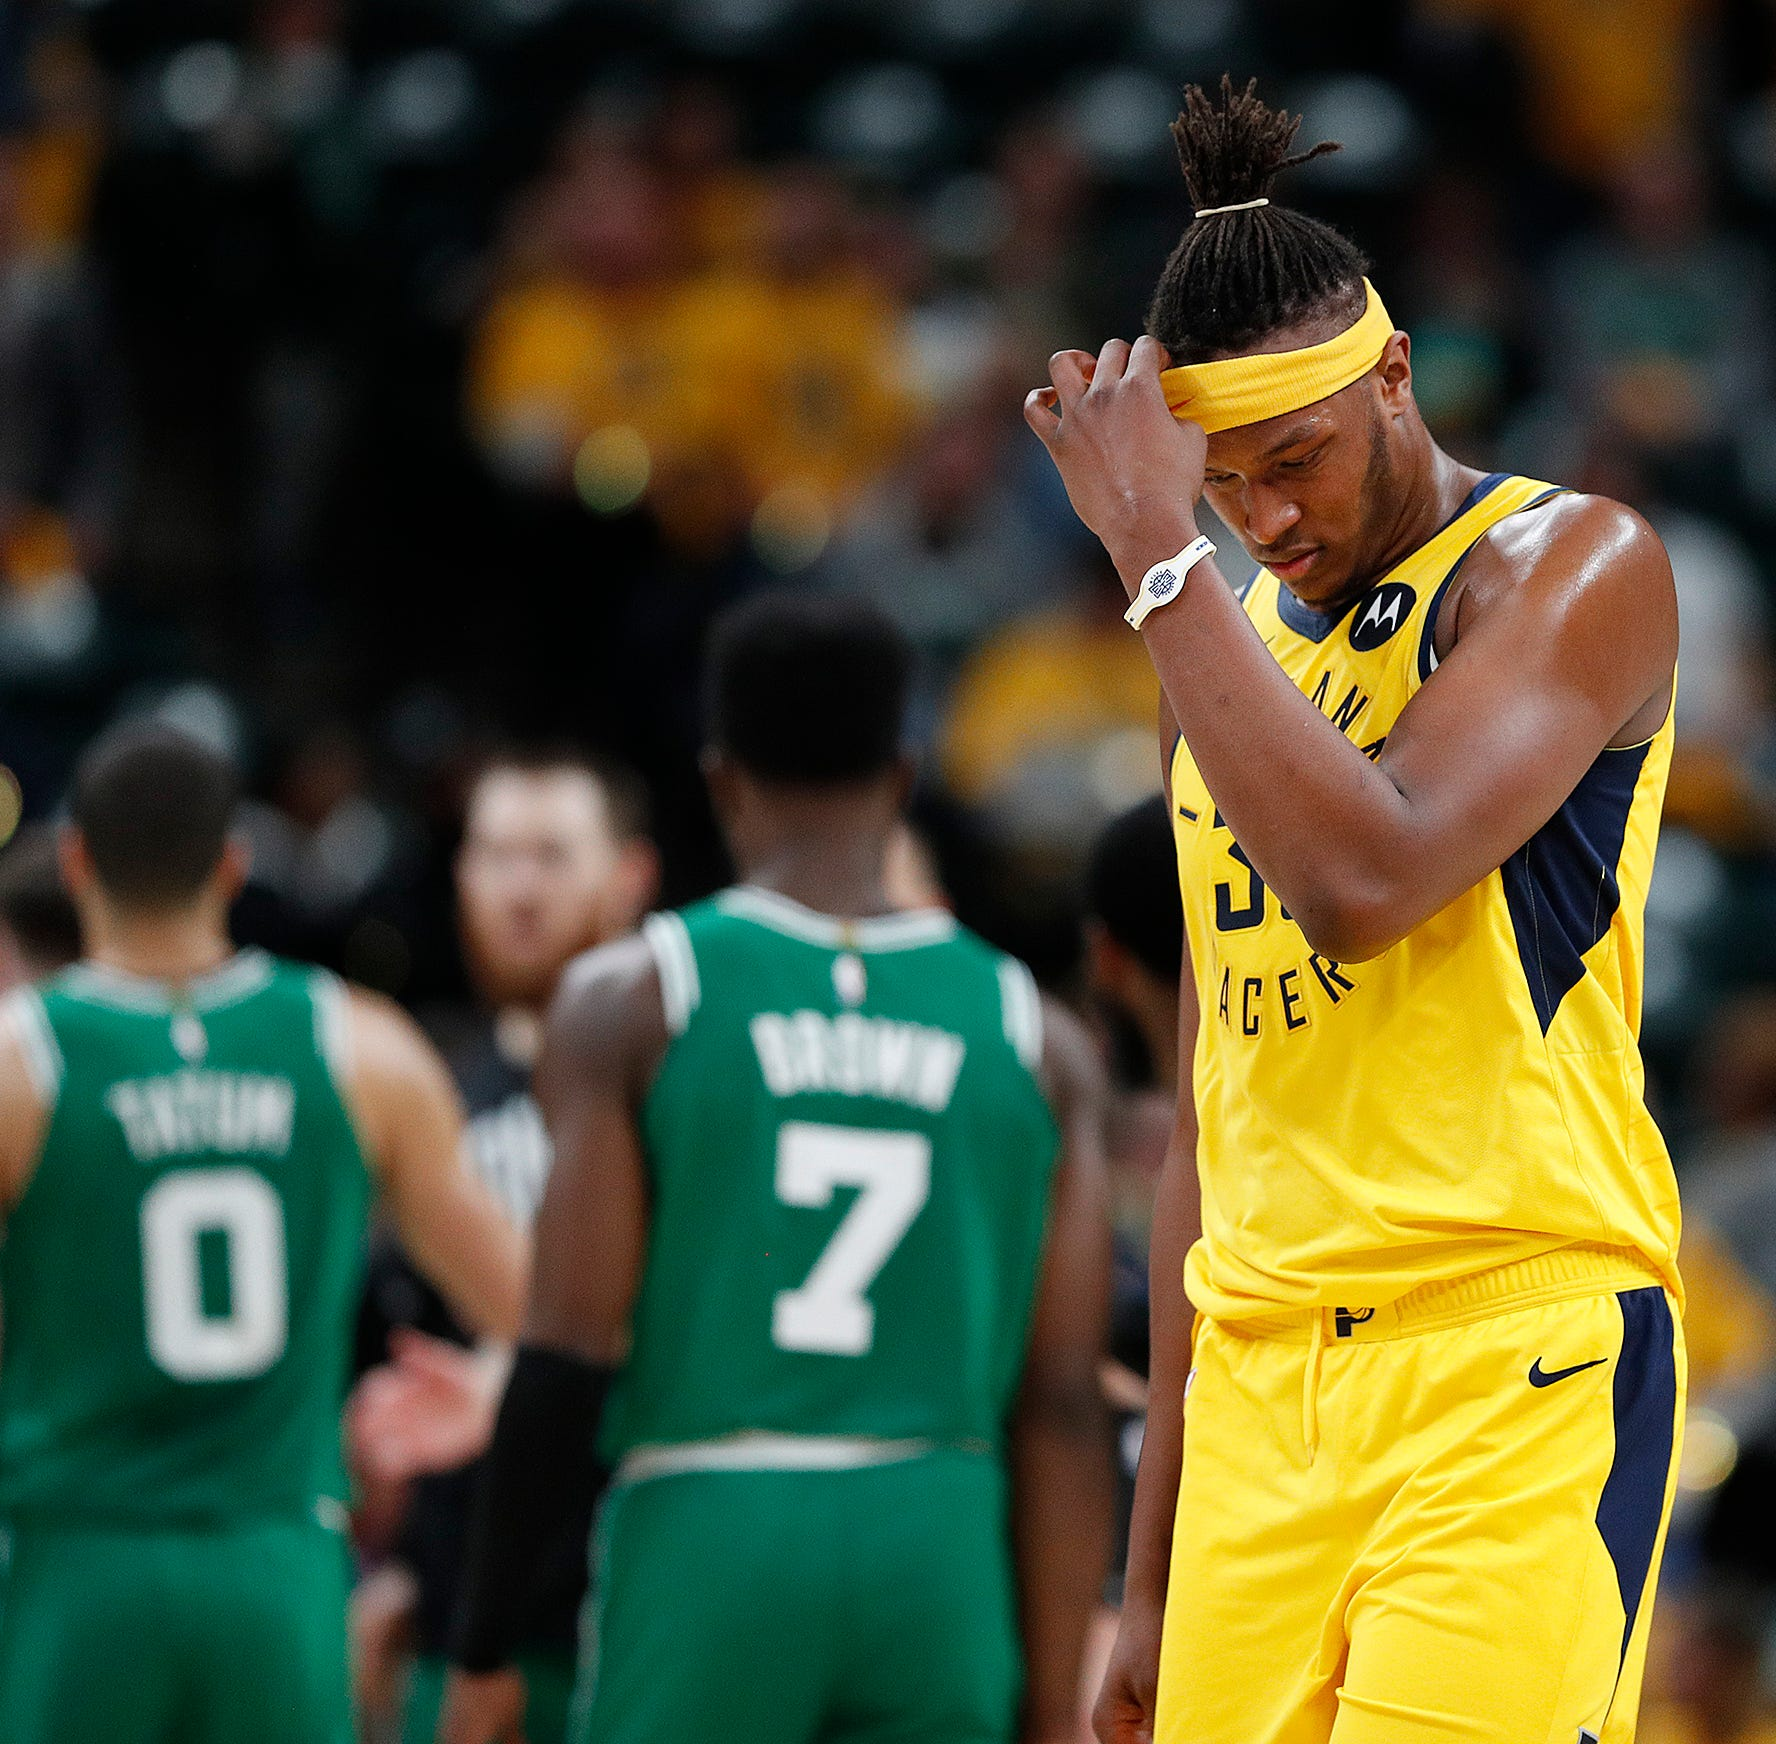 Pacers entering Game 4: 'We still haven't played our best basketball' vs. Celtics